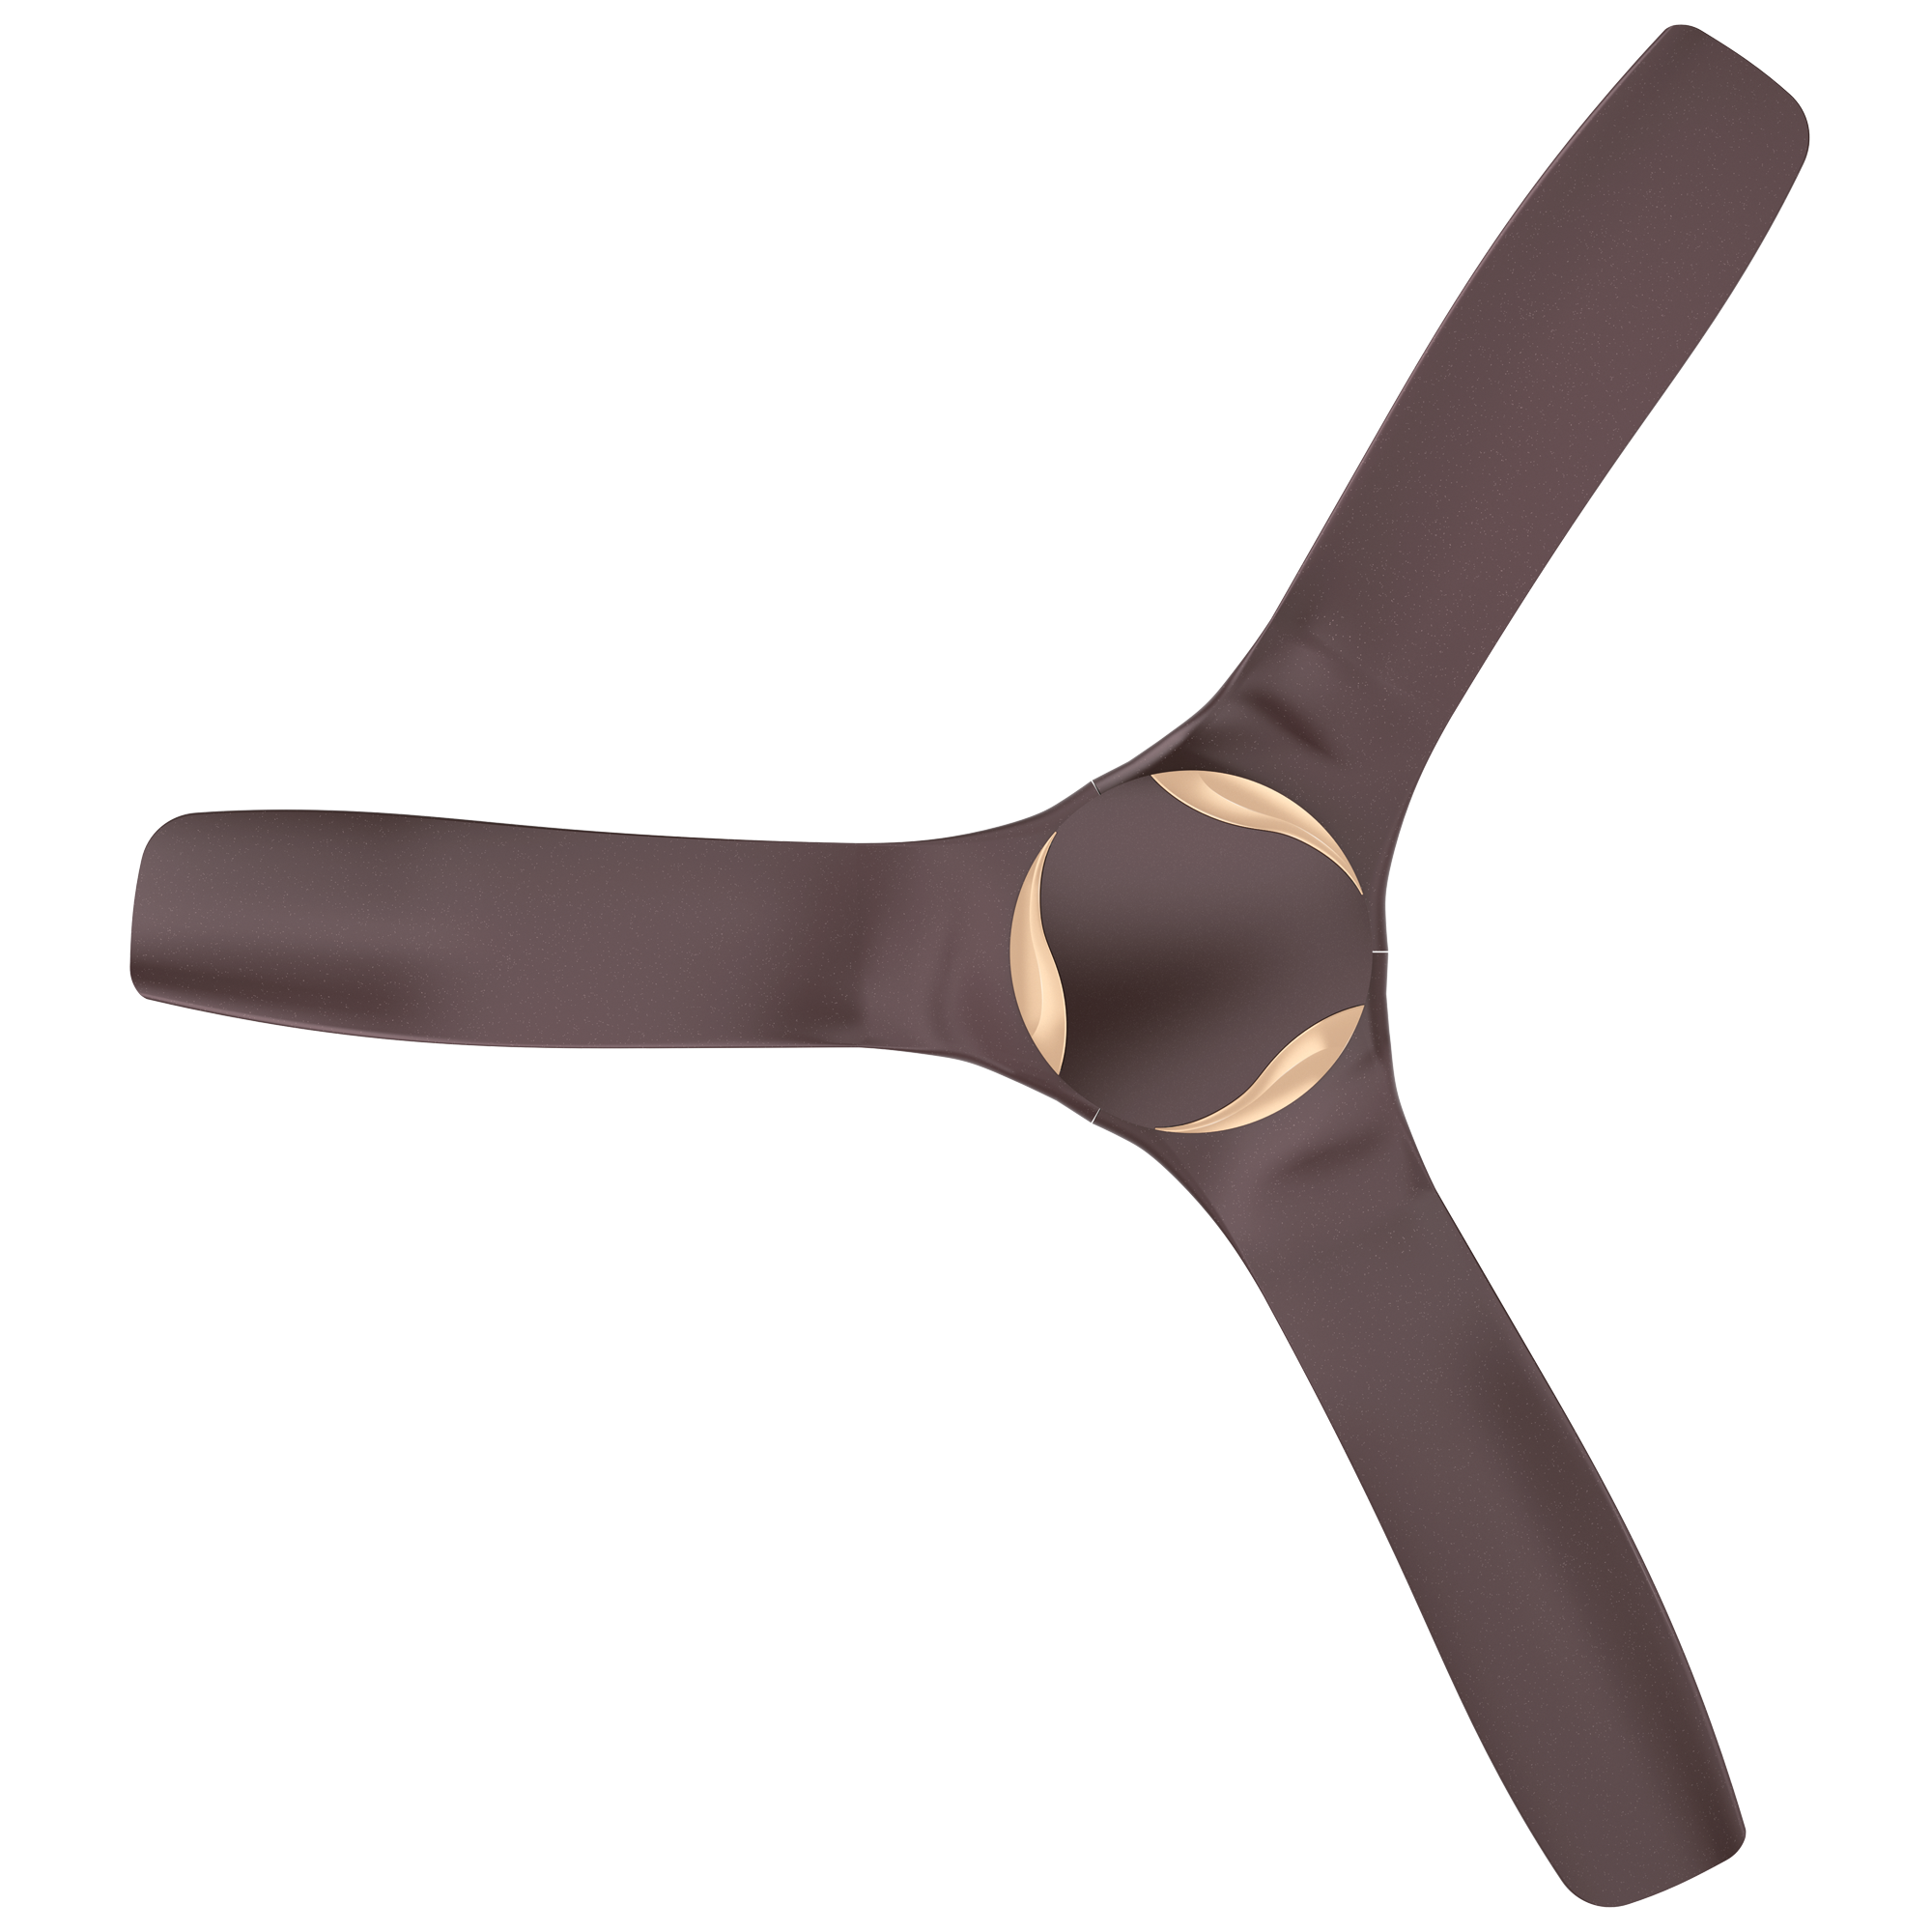 Havells Stealth Air Cruise 132cm Sweep 3 Blade Ceiling Fan (Dust Resistant, FHCSBSTDUC52, Dusk Champagne)_1